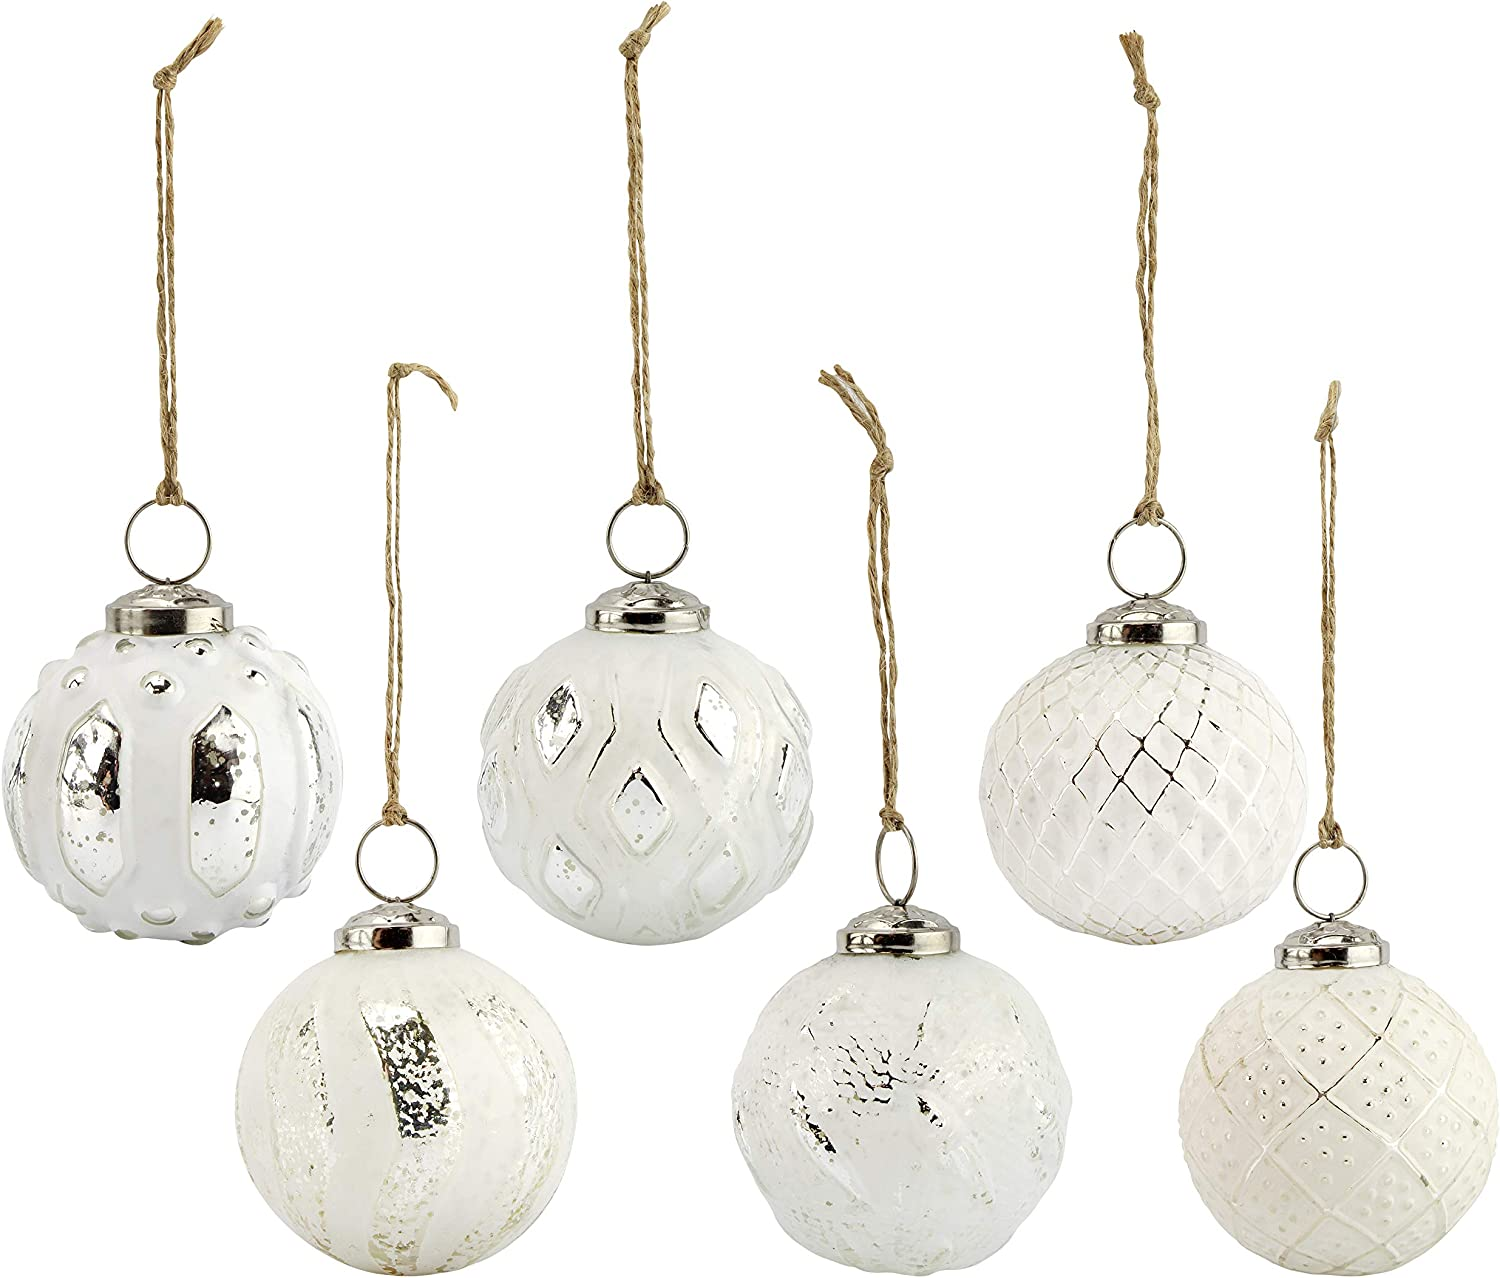 AuldHome Farmhouse Ball Ornaments (Set of 6, White); Distressed Metal Glass Ball Vintage Style Christmas Decorations